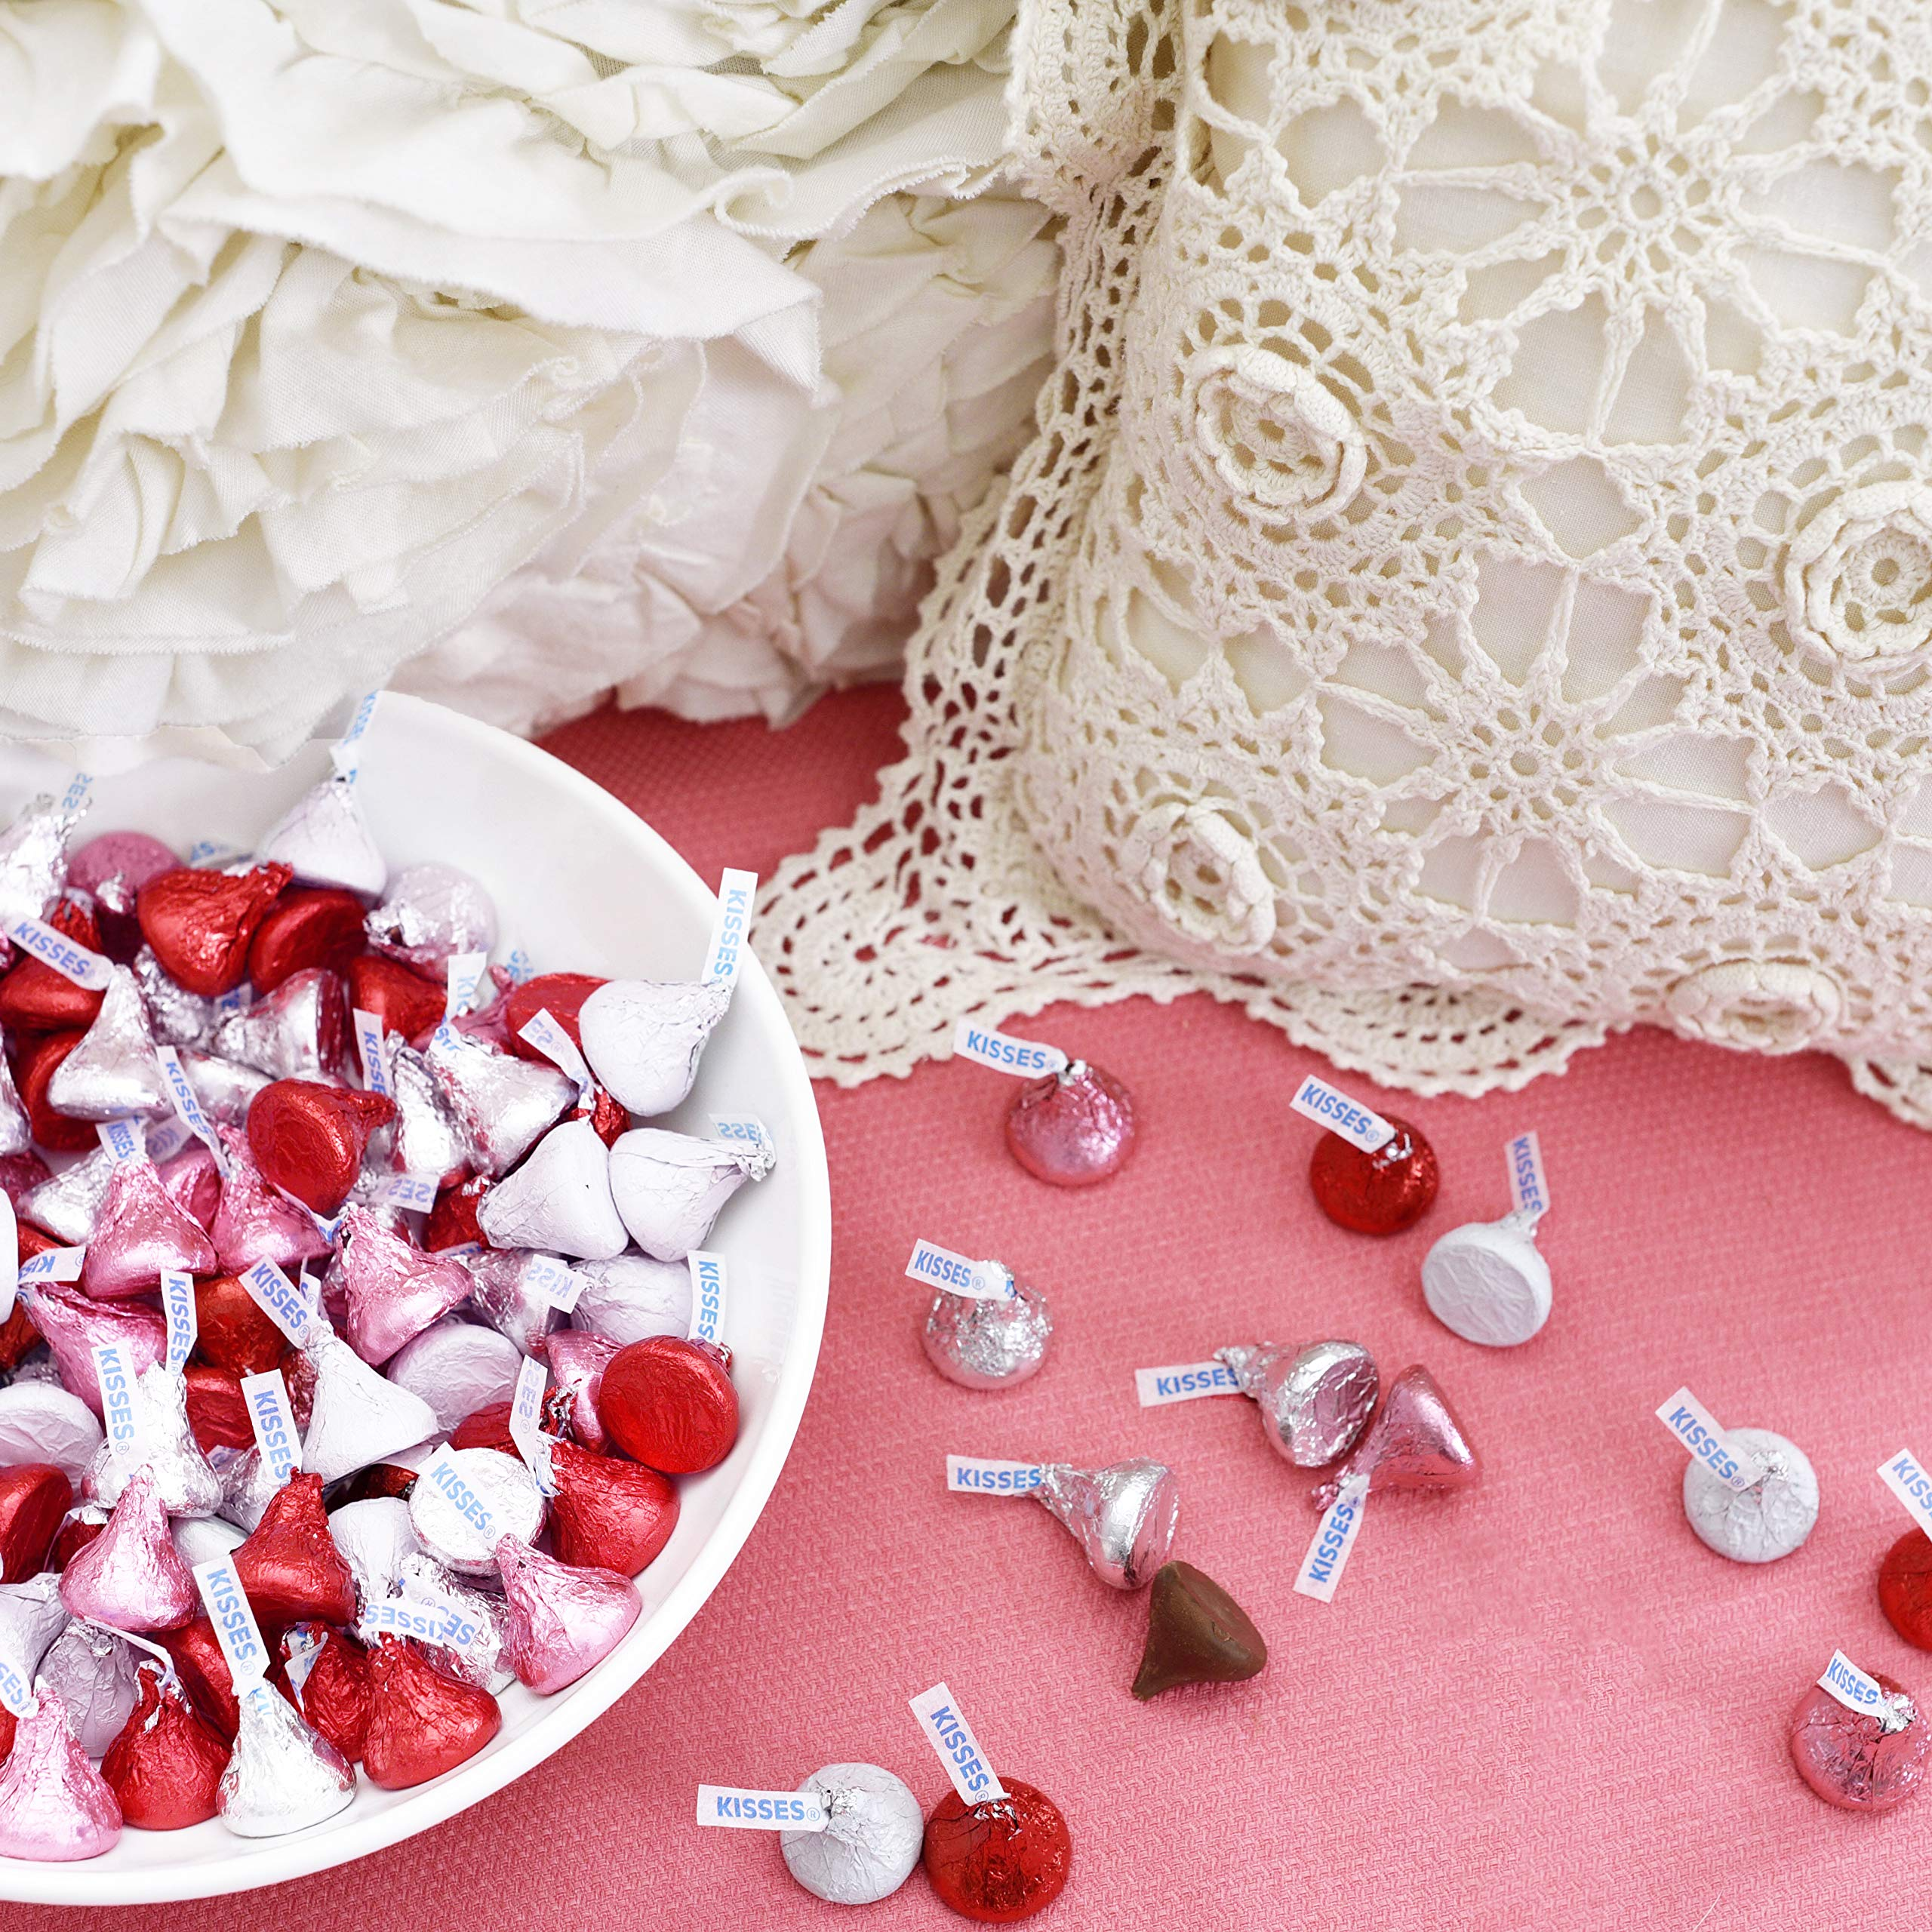 HERSHEY'S KISSES Chocolate Candy, Red Foils, 4.1lb Bulk Candy, approx. 400 Pieces. Perfect for Graduation and 4th of July Decorations by Kisses (Image #3)